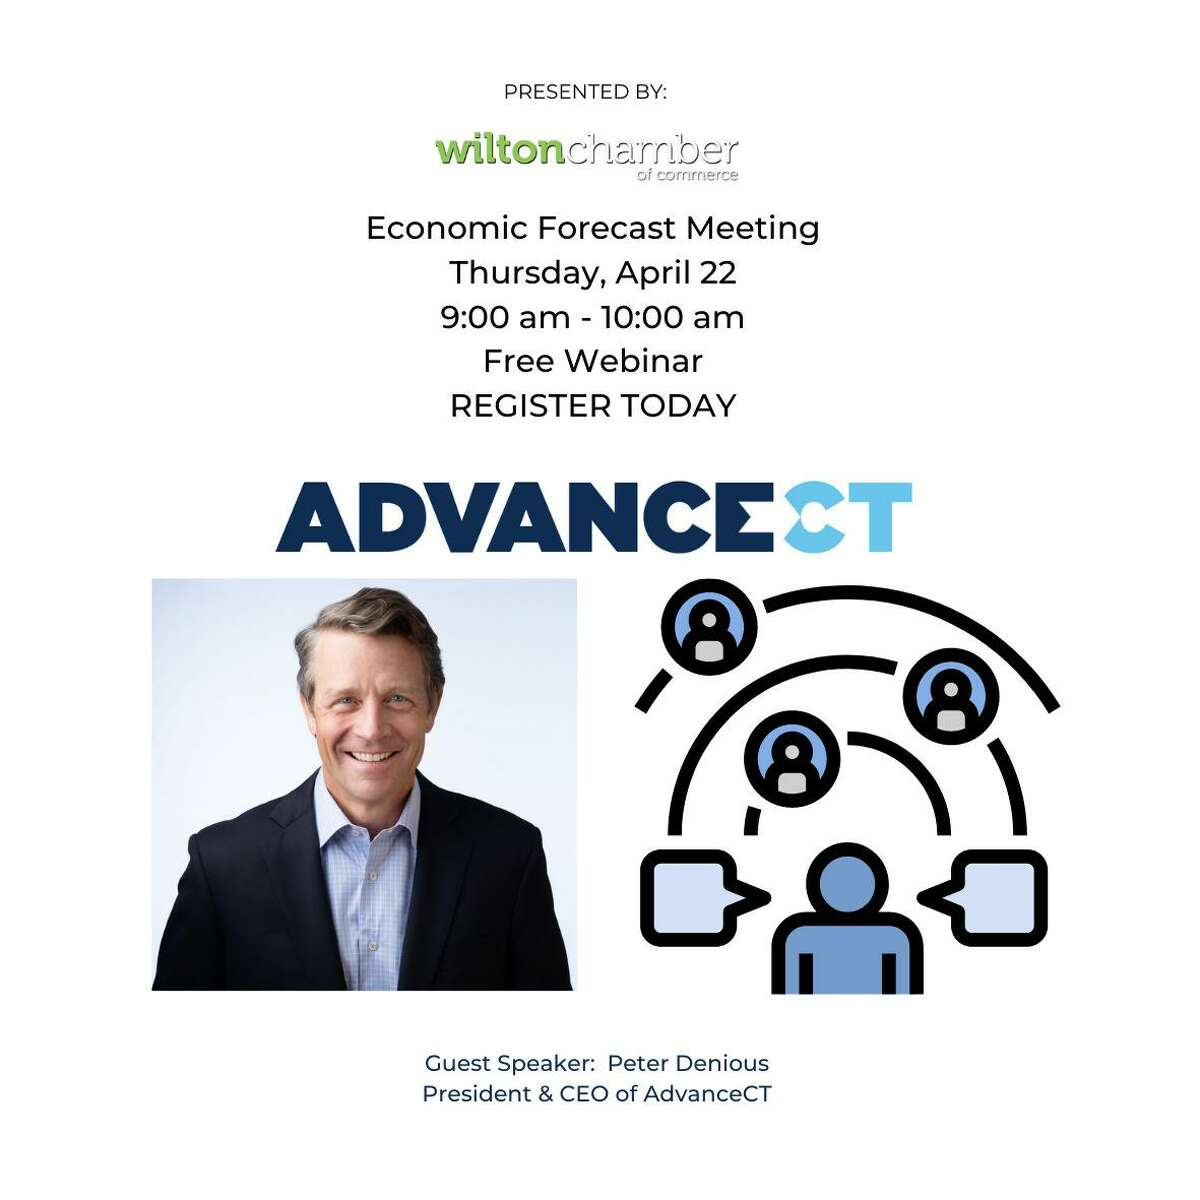 """The members of the Wilton Chamber of Commerce are presenting their """"2021 Economic Forecast Meeting,"""" Thursday, April 22, Earth Day, from 9 to 10 a.m. on Zoom. The meeting will be led by Peter Denious, a Wilton resident, and the president, and C.E.O. of AdvanceCT, a non-profit organization."""